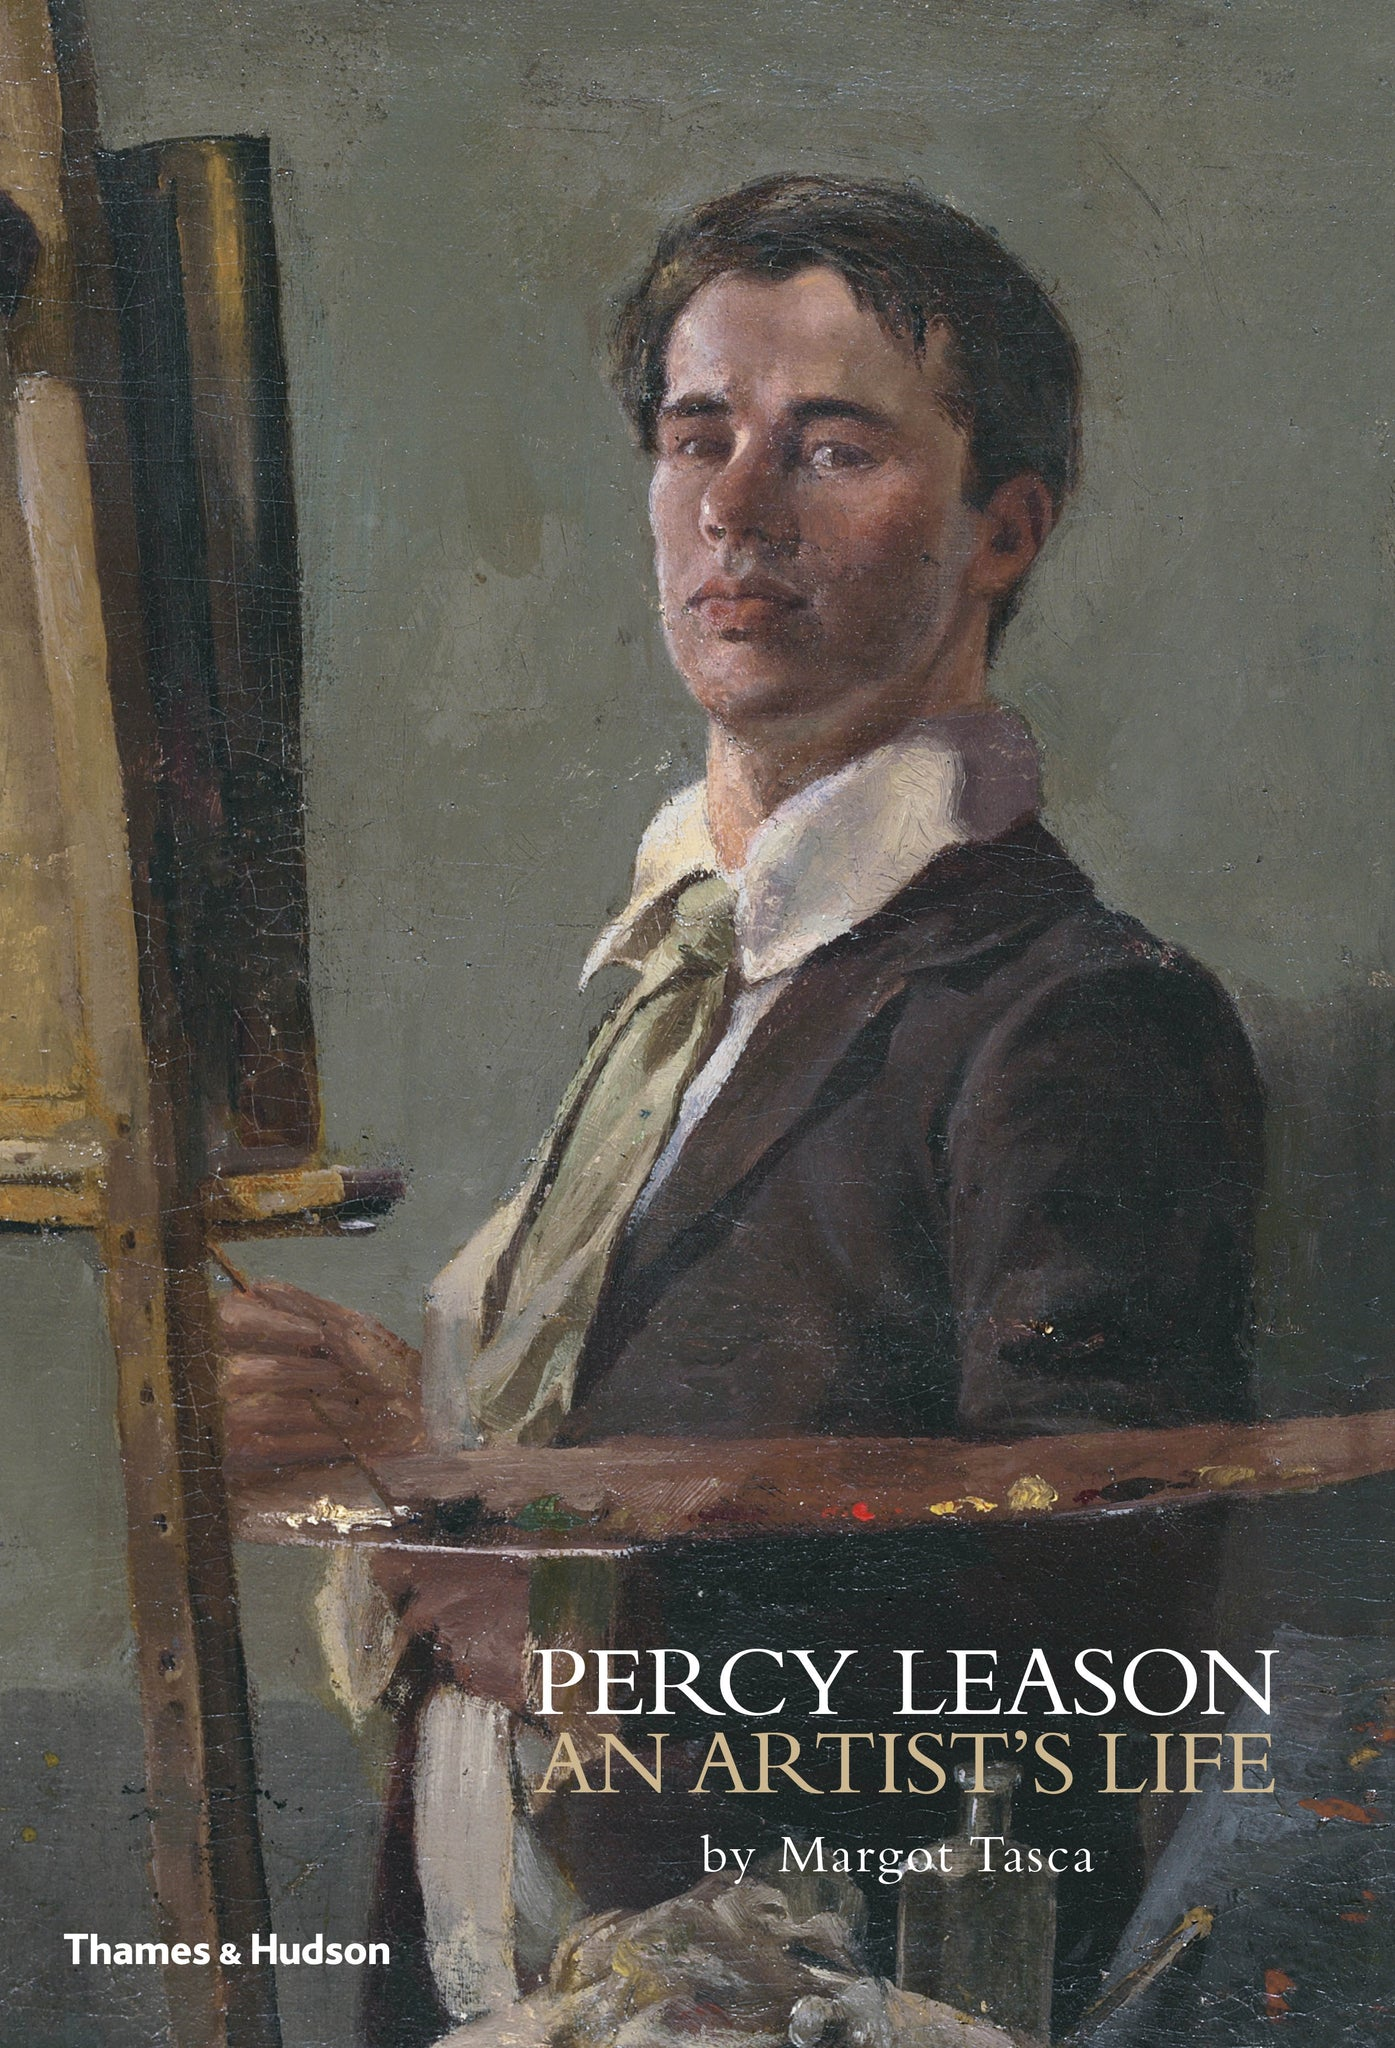 Percy Leason: An Artist's Life